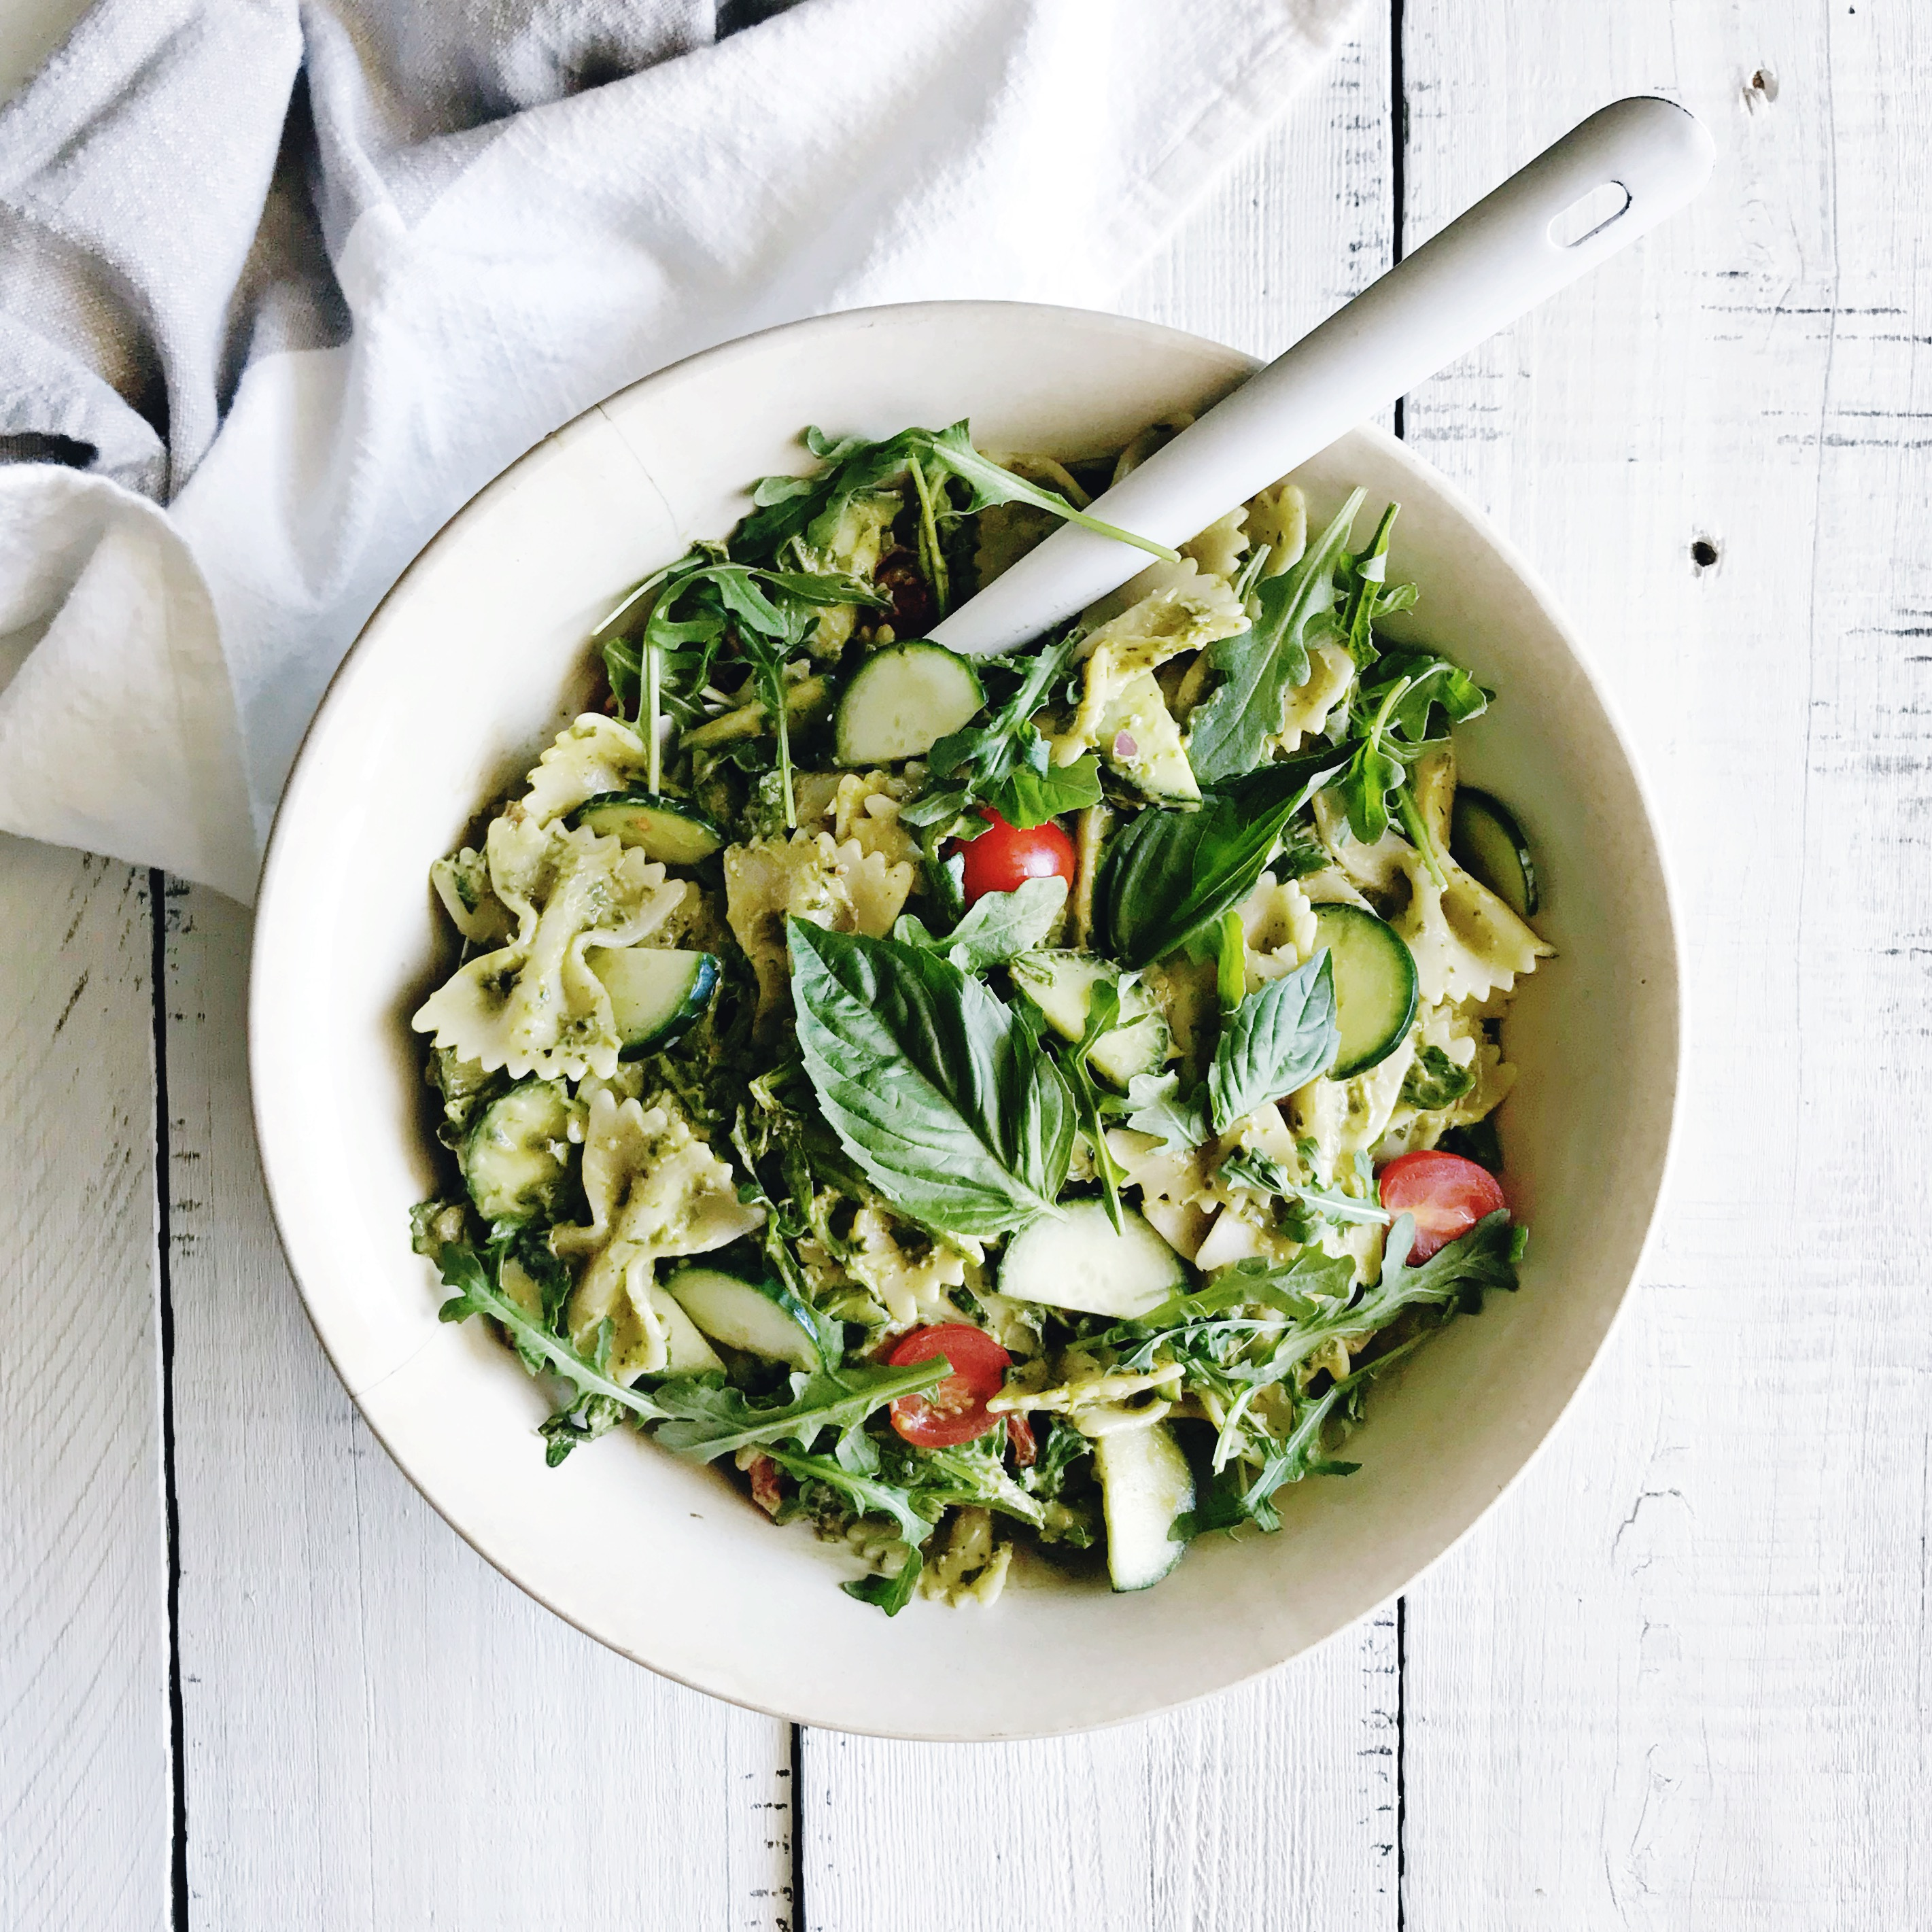 Creamy Avocado Pesto Pasta Salad with a vegan and nut free option!